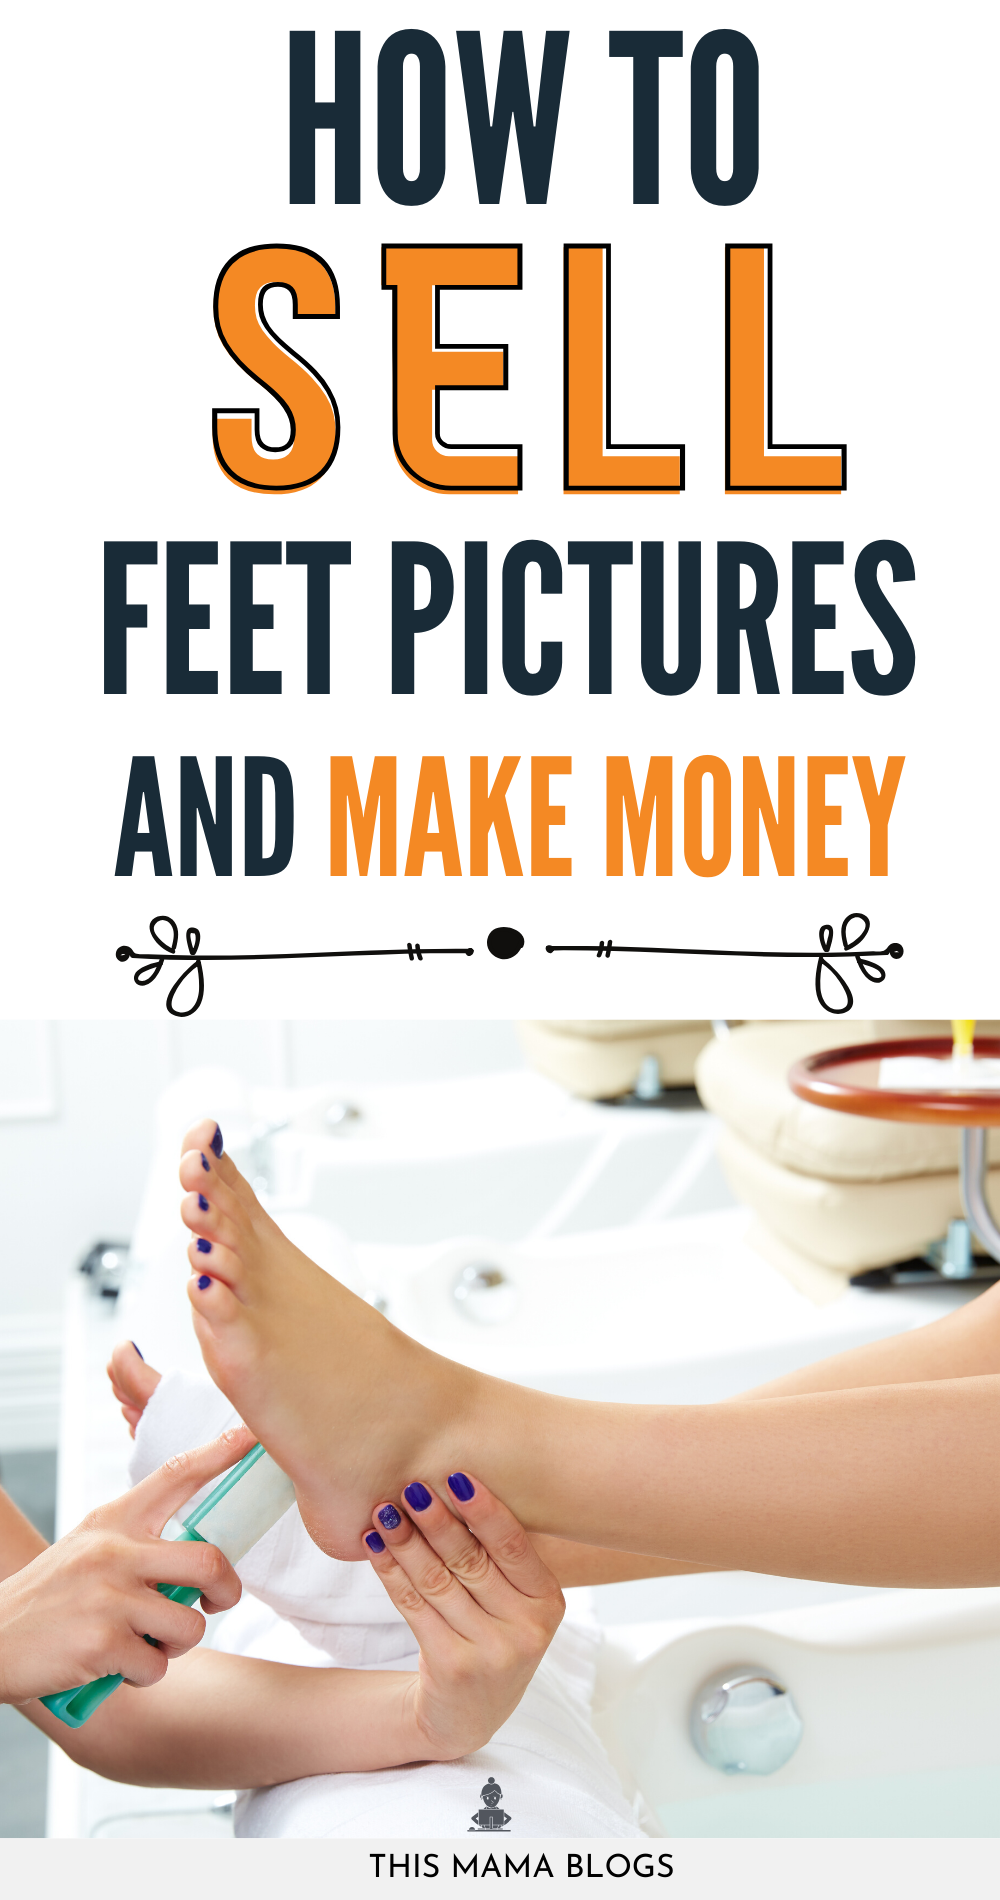 Selling Foot Pictures